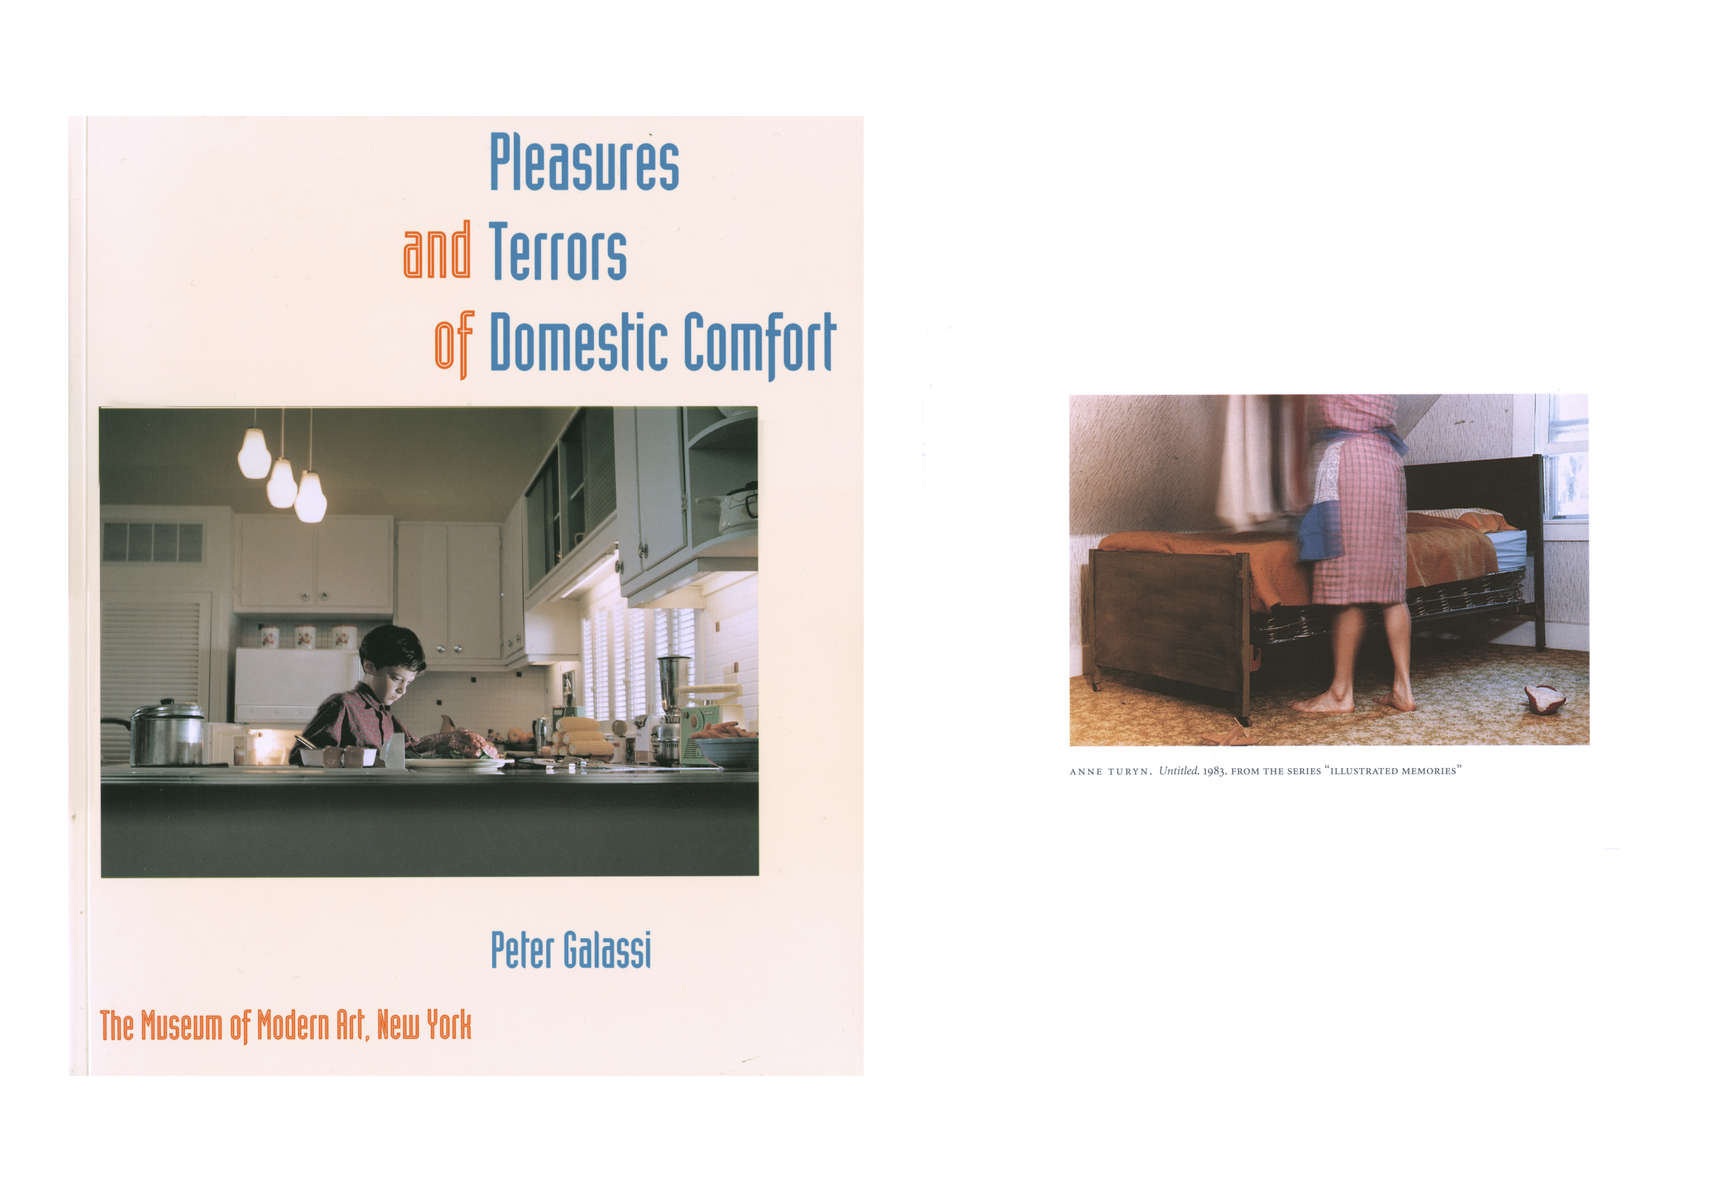 Pleasures and Terrors of Domestic ComfortPeter Galassi1991The Museum of Modern Art, New Yorkdistributed by Harry N. Abrams, Incimage page 46